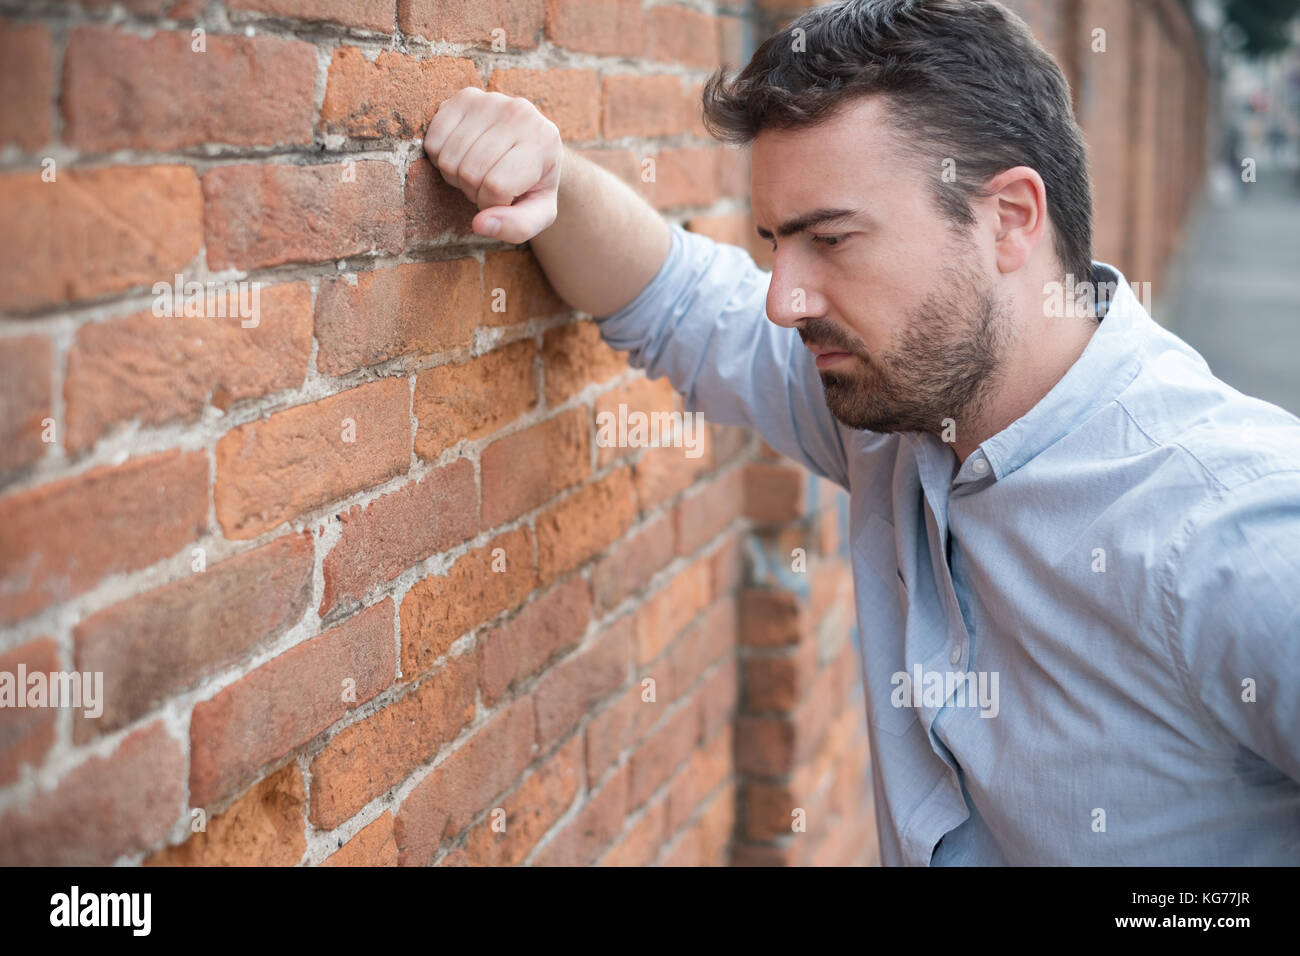 Shame Stock Photos & Shame Stock Images - Alamy